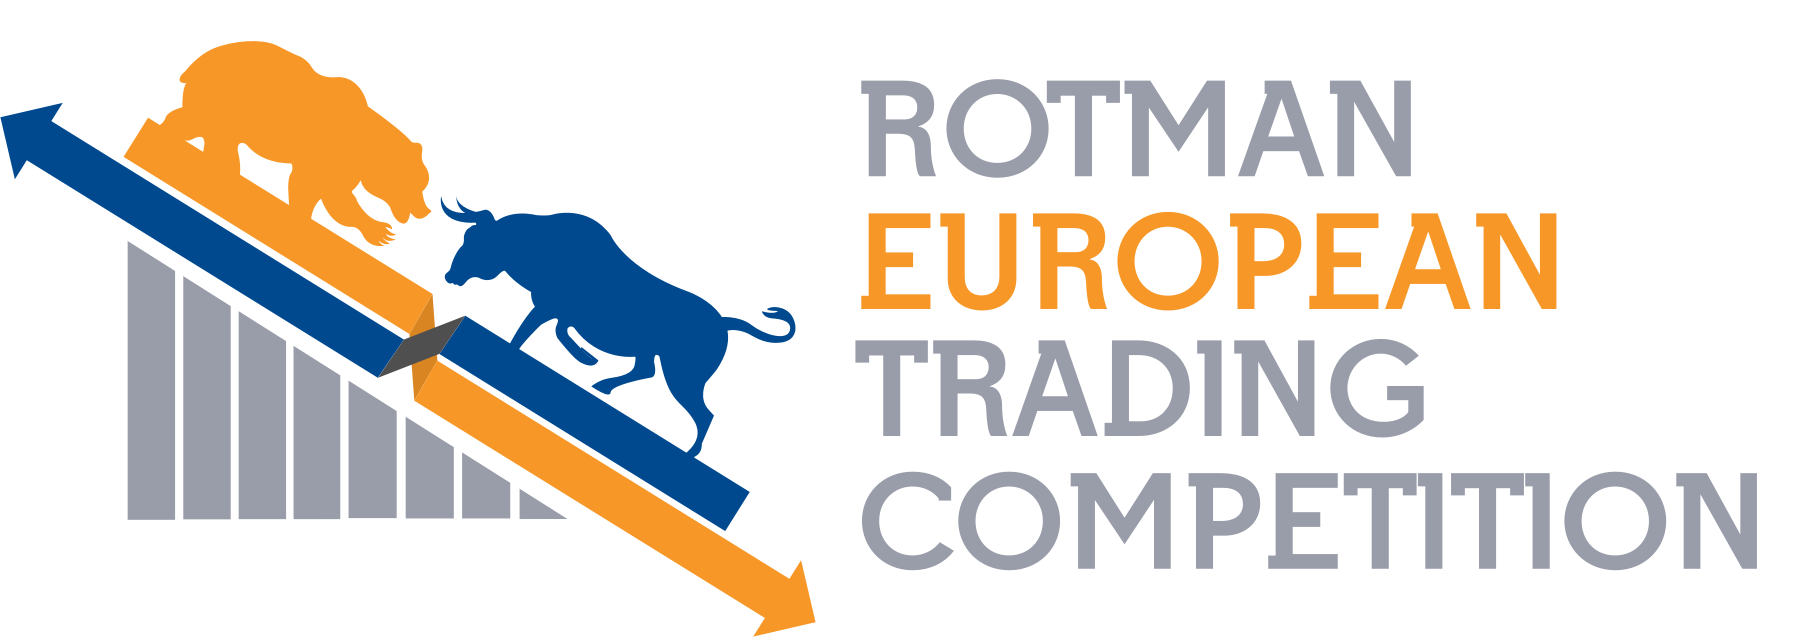 Rotman European Trading Competition